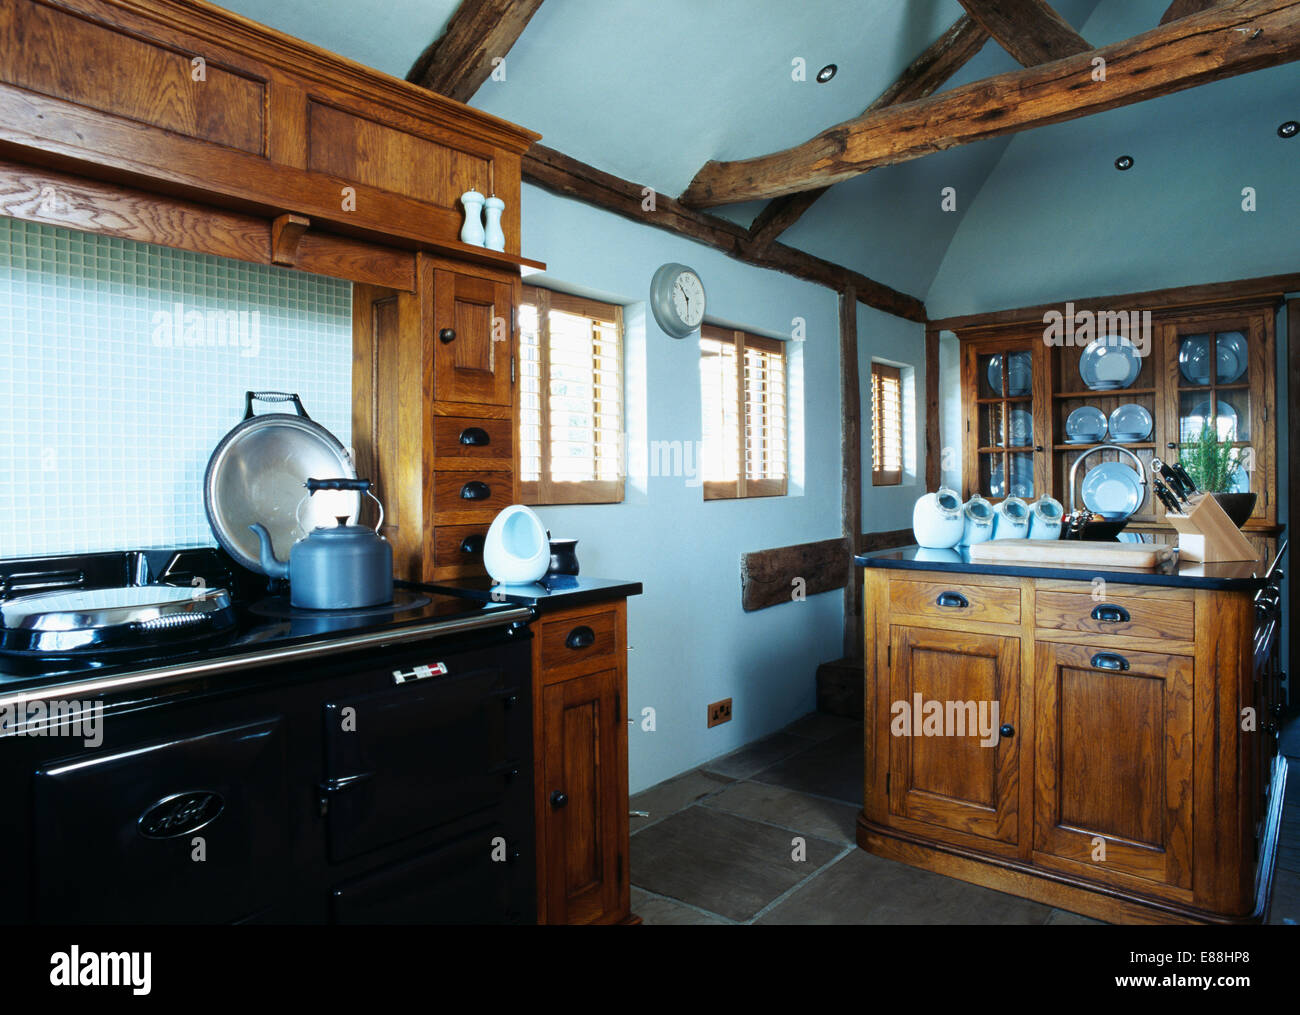 Blue Kettle On Black Aga In Pastel Country Kitchen With Stained Wood Units